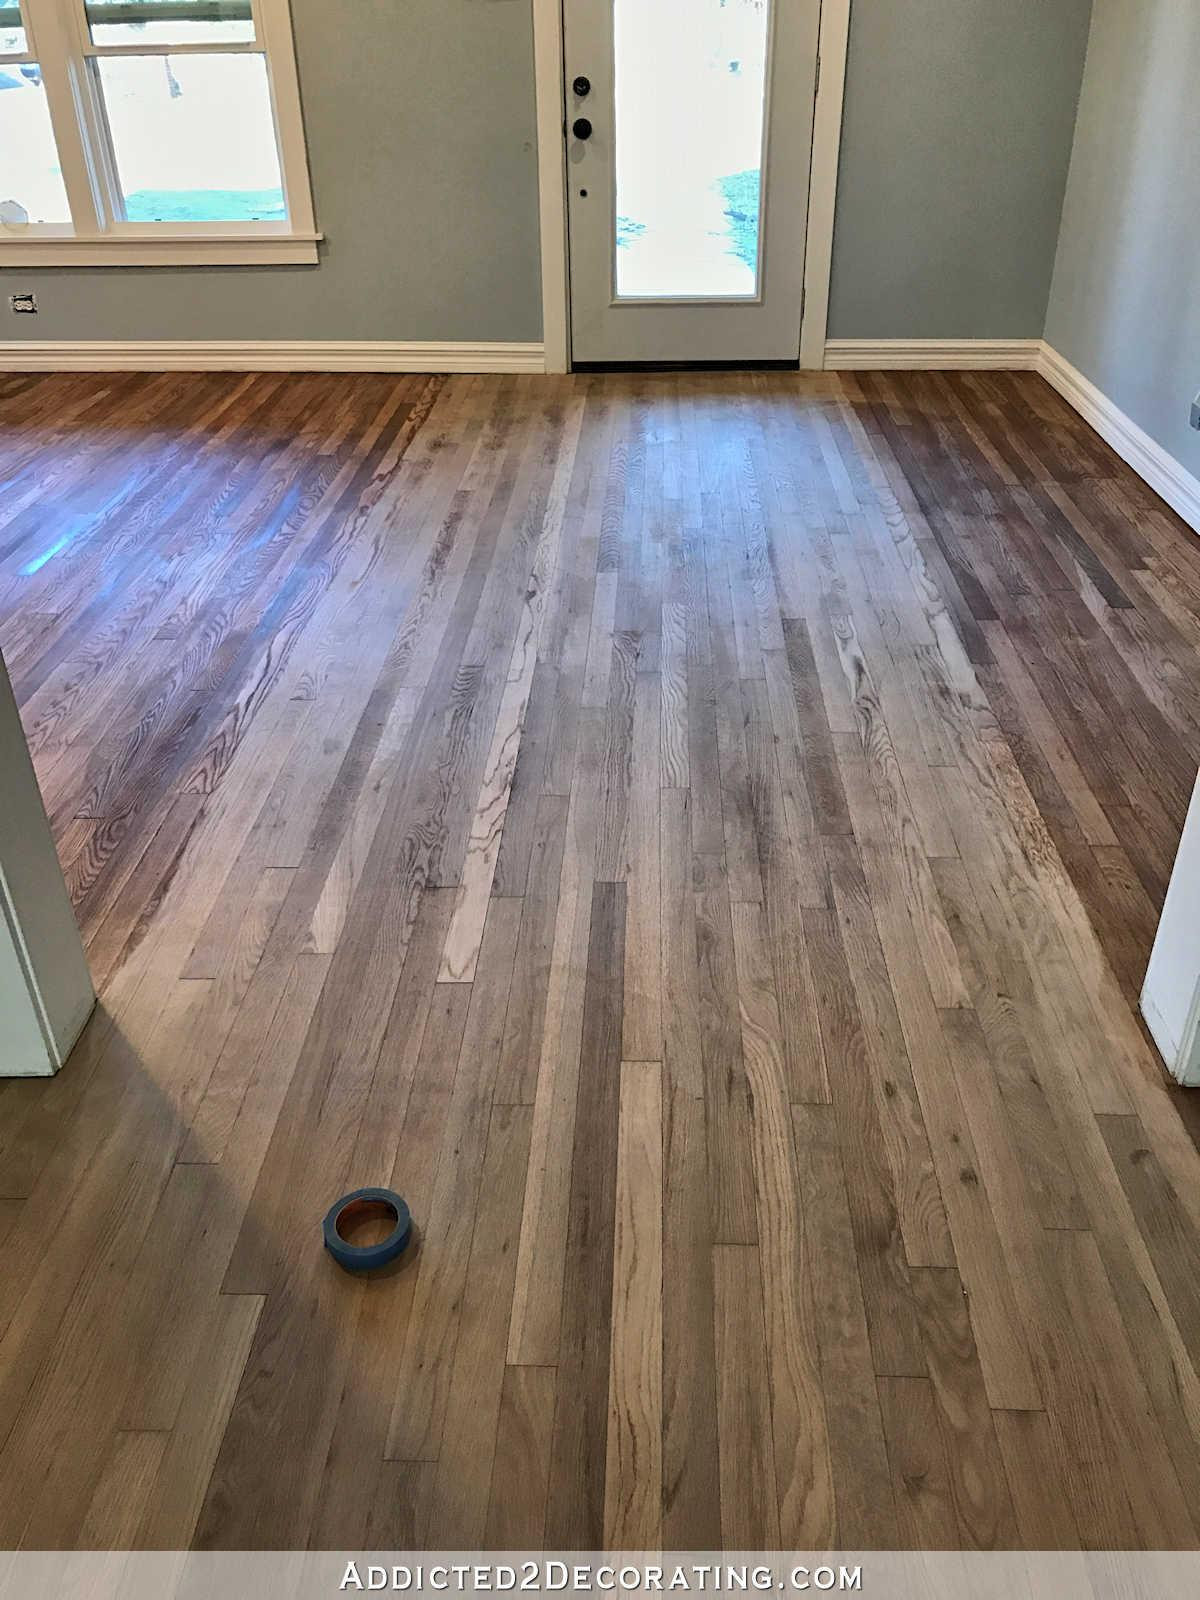 hardwood floor paper of luxury of diy wood floor refinishing collection with regard to staining red oak hardwood floors 4 entryway and living room wood conditioner